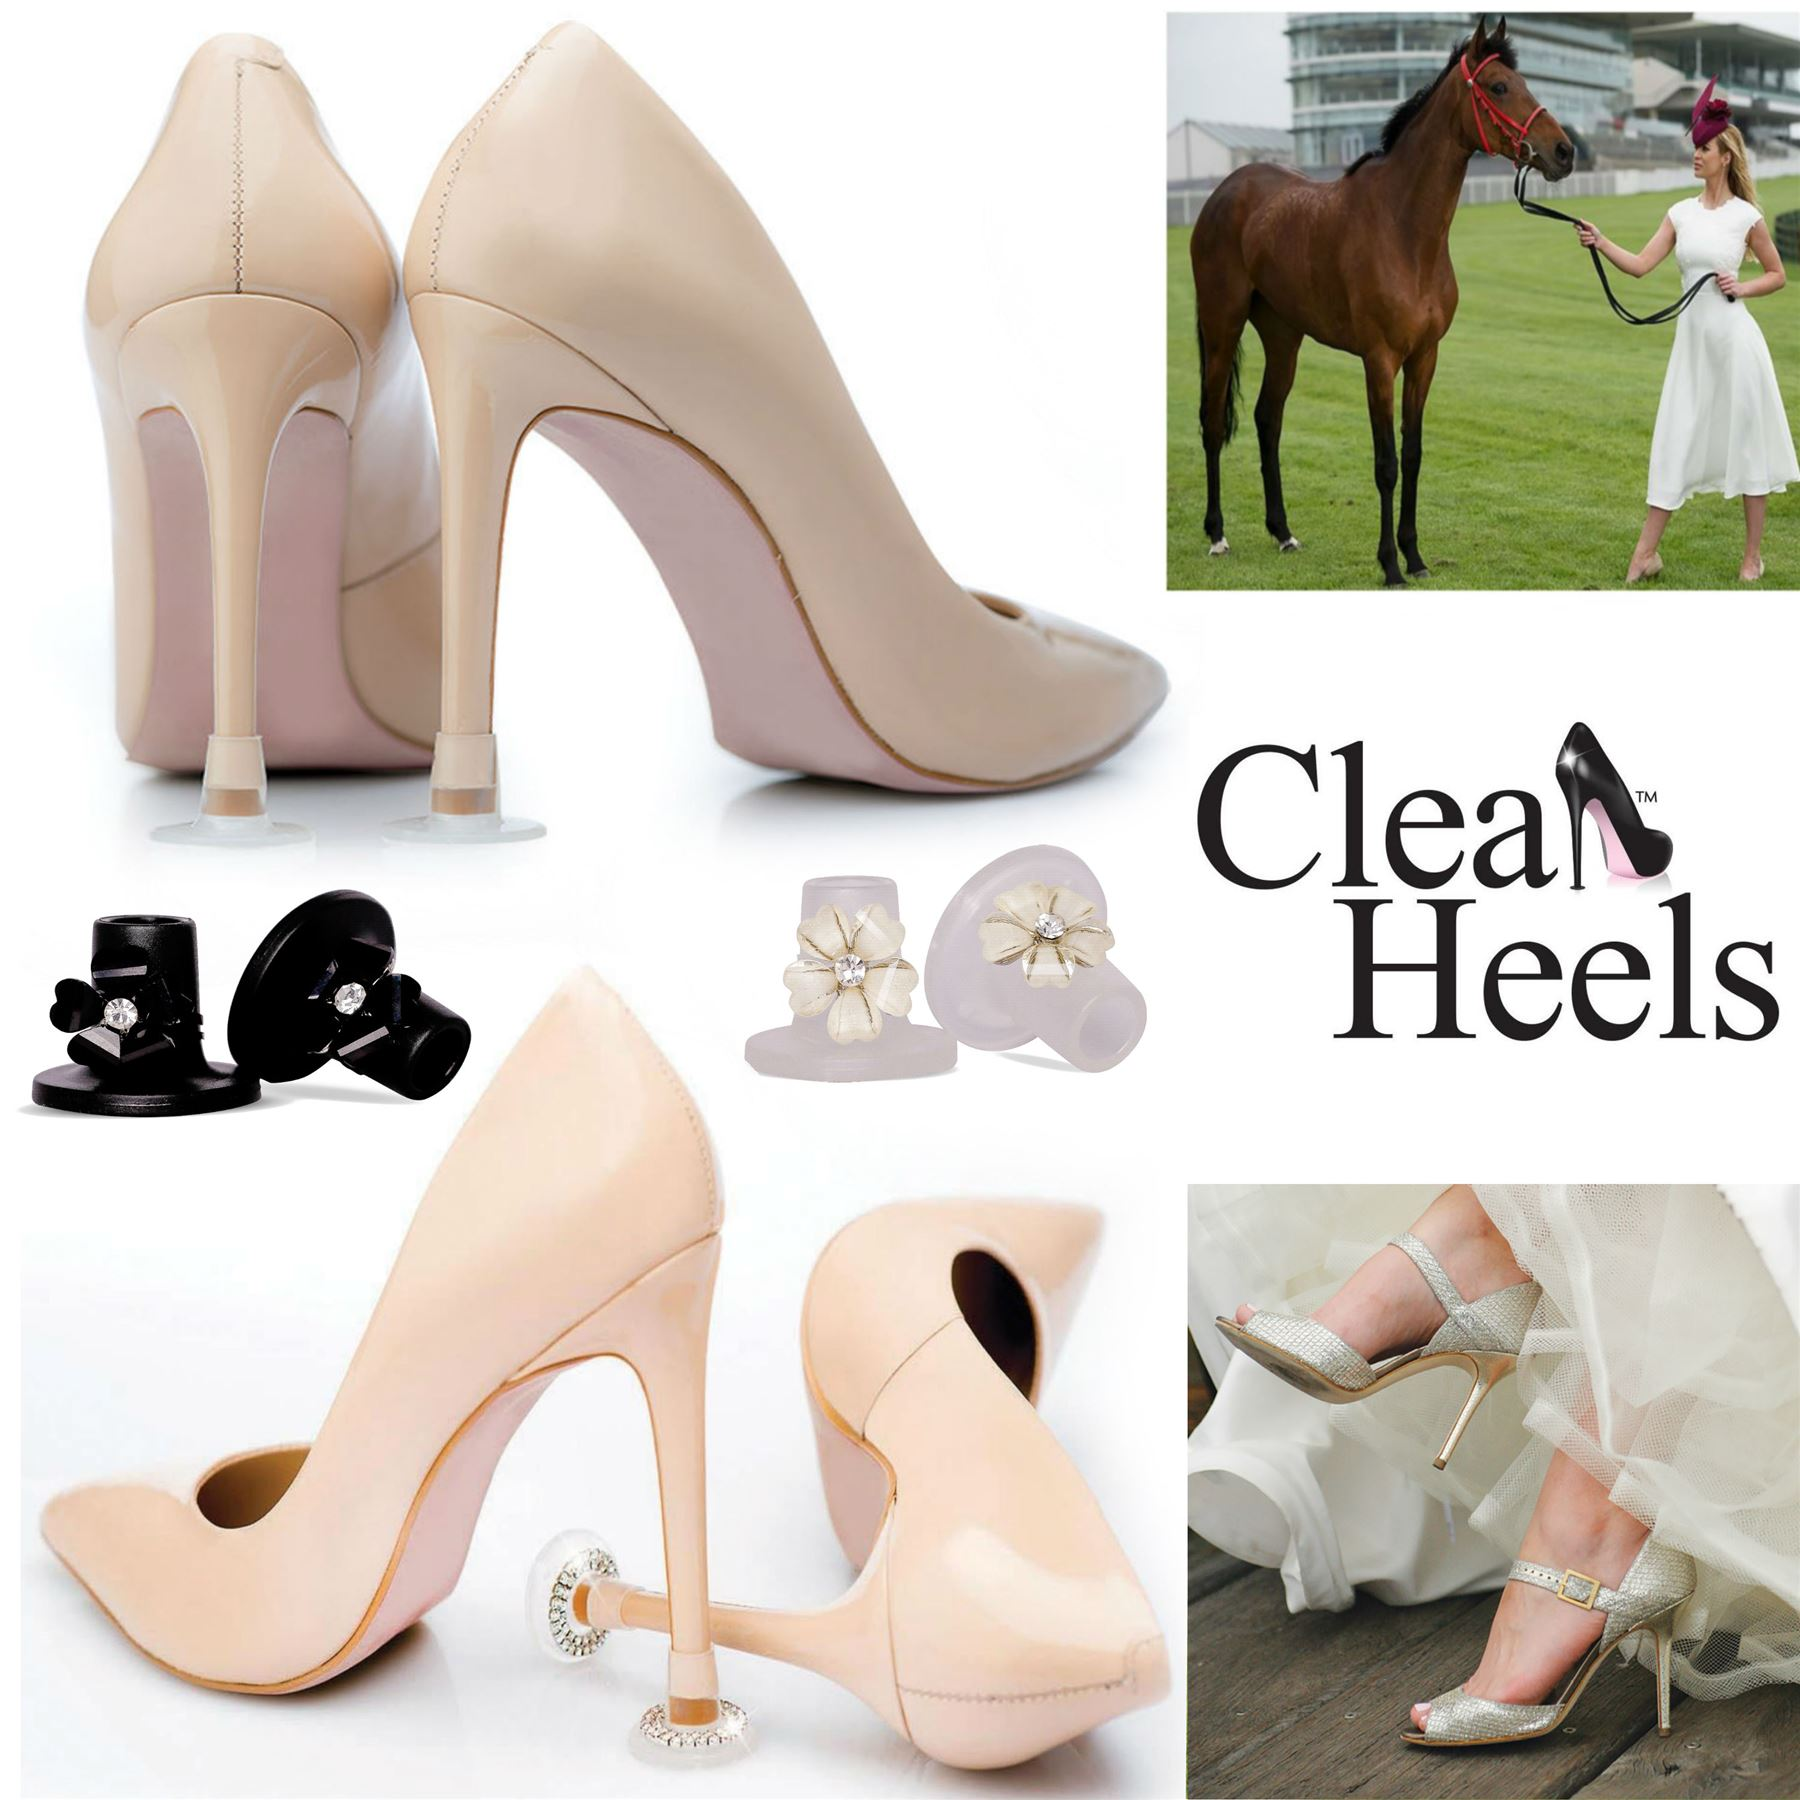 High heel Protectors-Bridal Shoes FREE P/&P Clean Heels HEEL SLEEVES Pack of 3